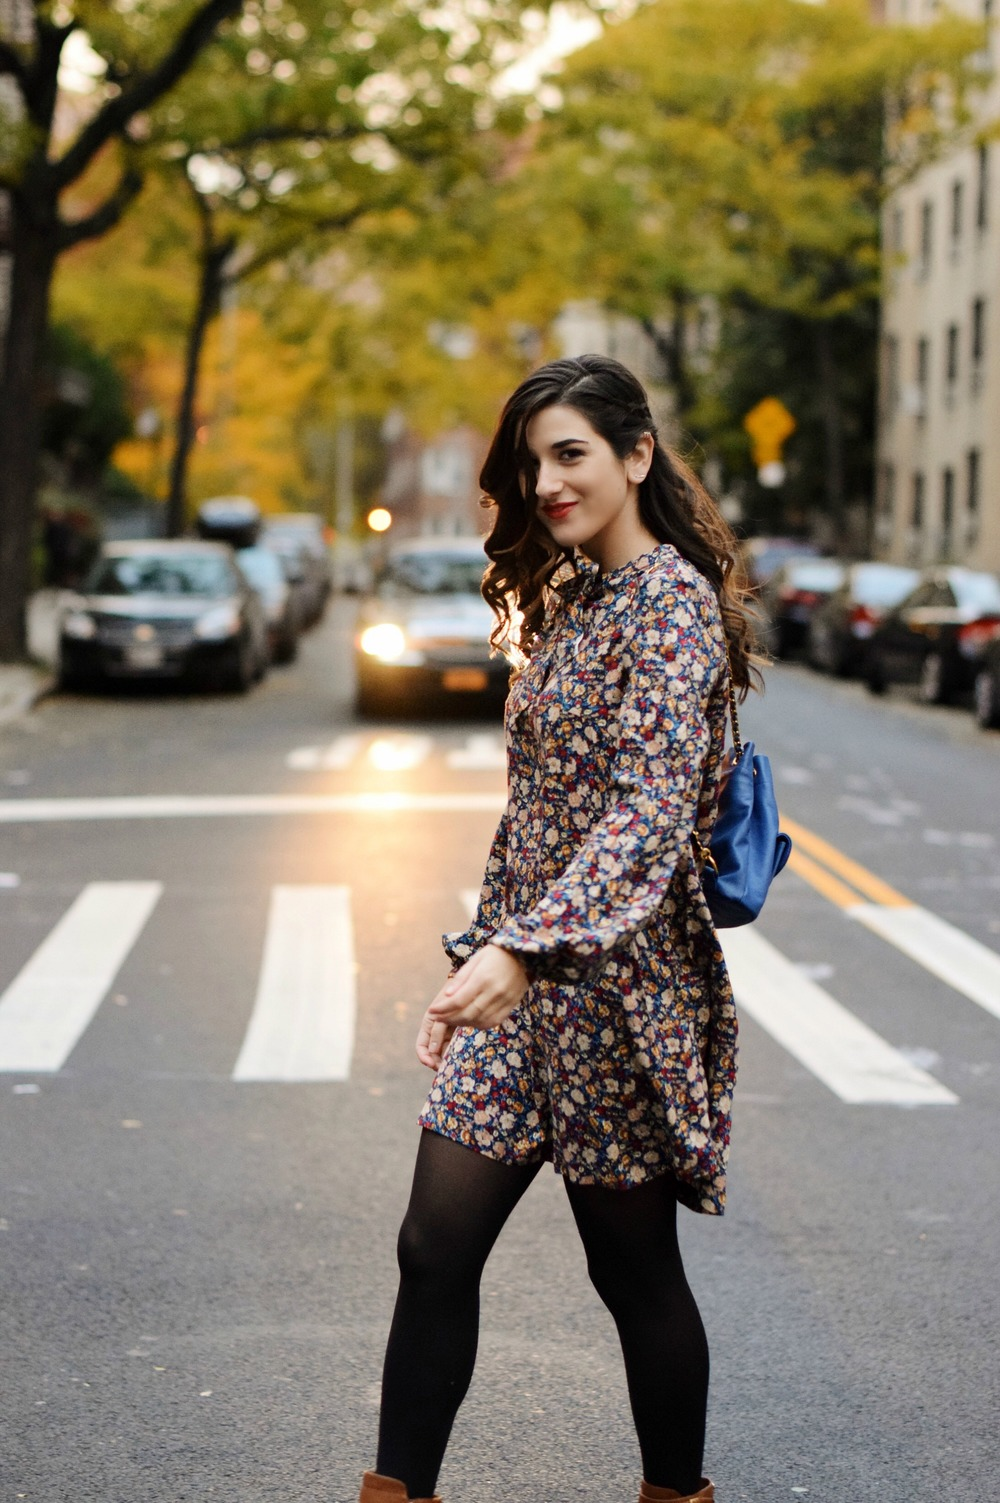 Floral Dress Blue Leather Backpack Louboutins & Love Fashion Blog Esther Santer NYC Street Style Blogger Black Tights Fringe Preta Ivanka Trump Booties Hair Girl Women Shopping Inspo Inspiration Model New York City Photoshoot Trendy Winter OOTD Outfit.jpg